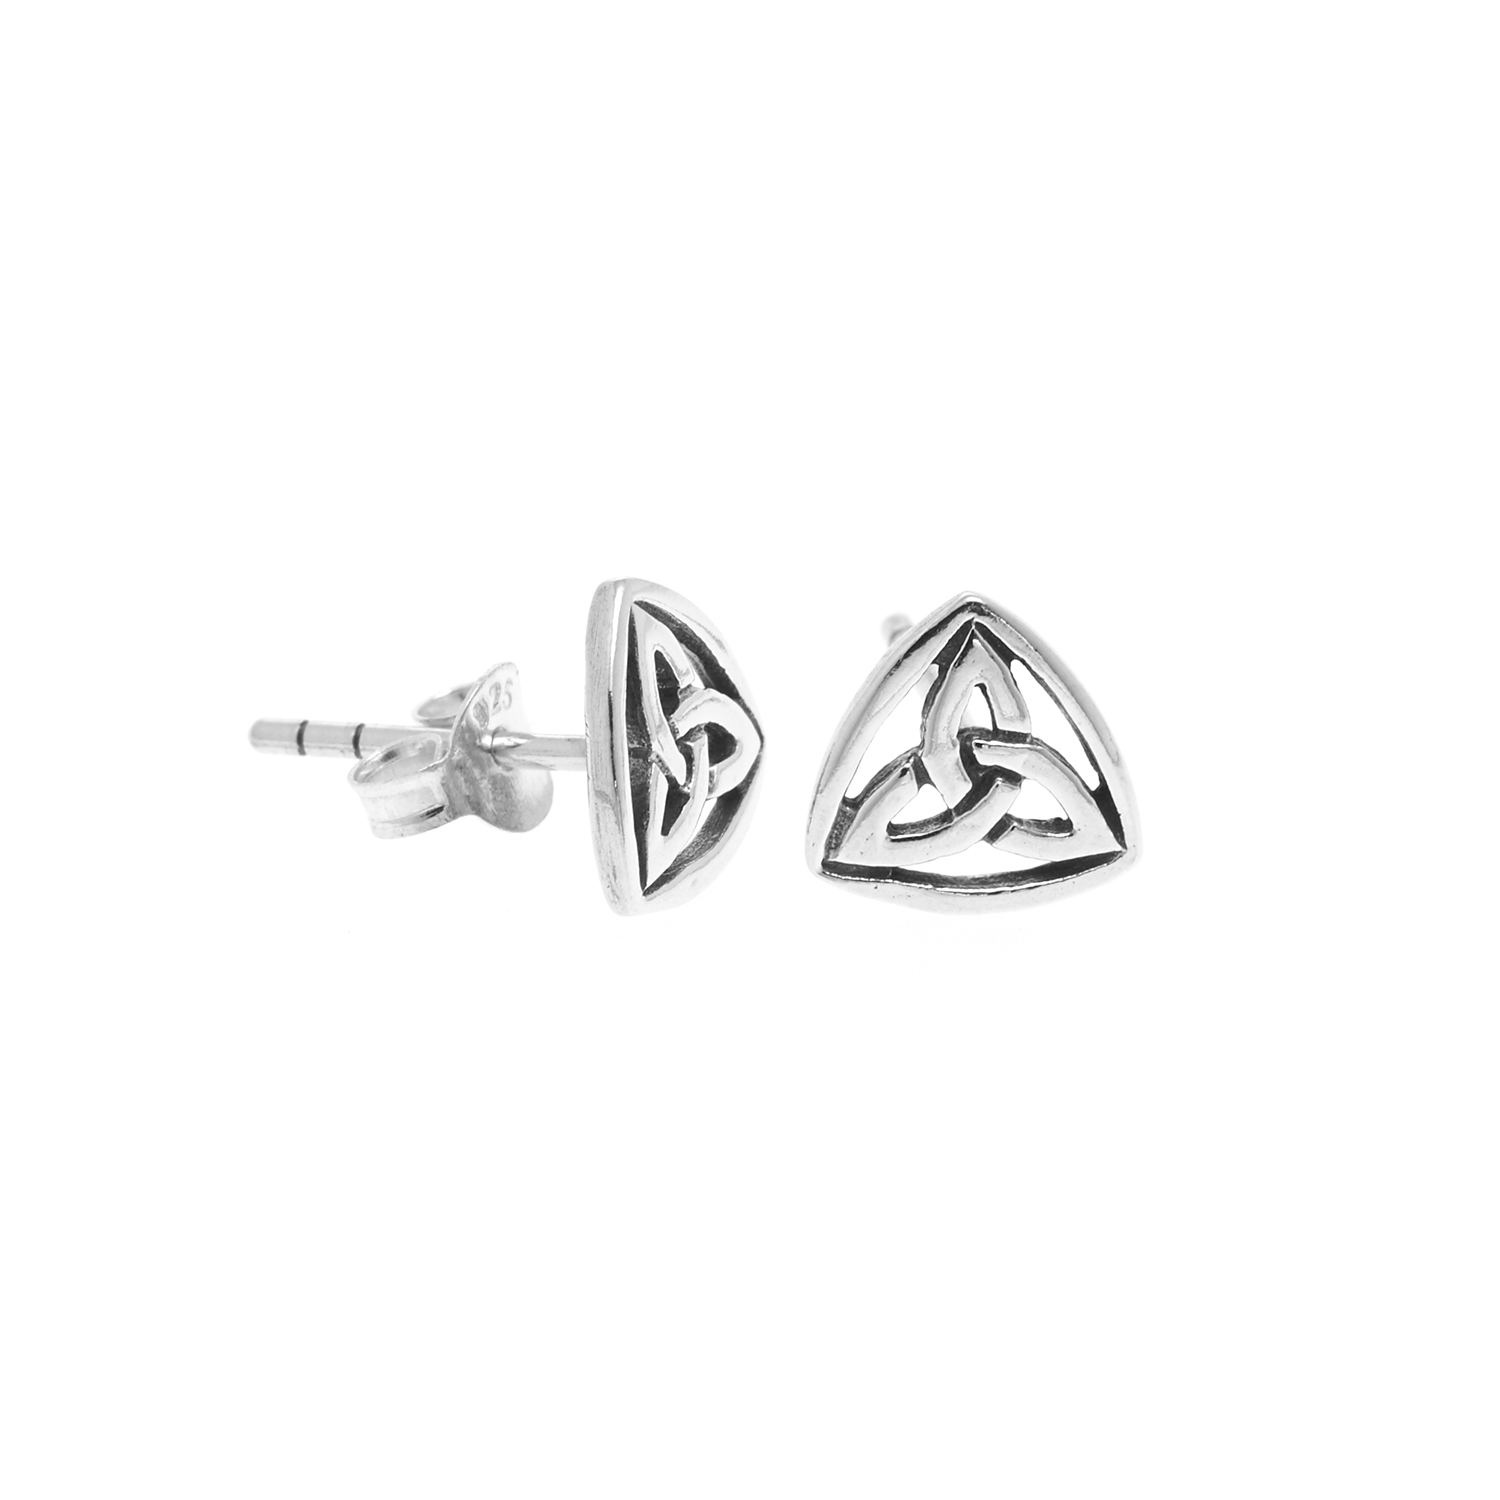 925 Sterling Silver Rounded Celtic Knot Trinity Post Stud Earrings 12 mm - Nickel Free